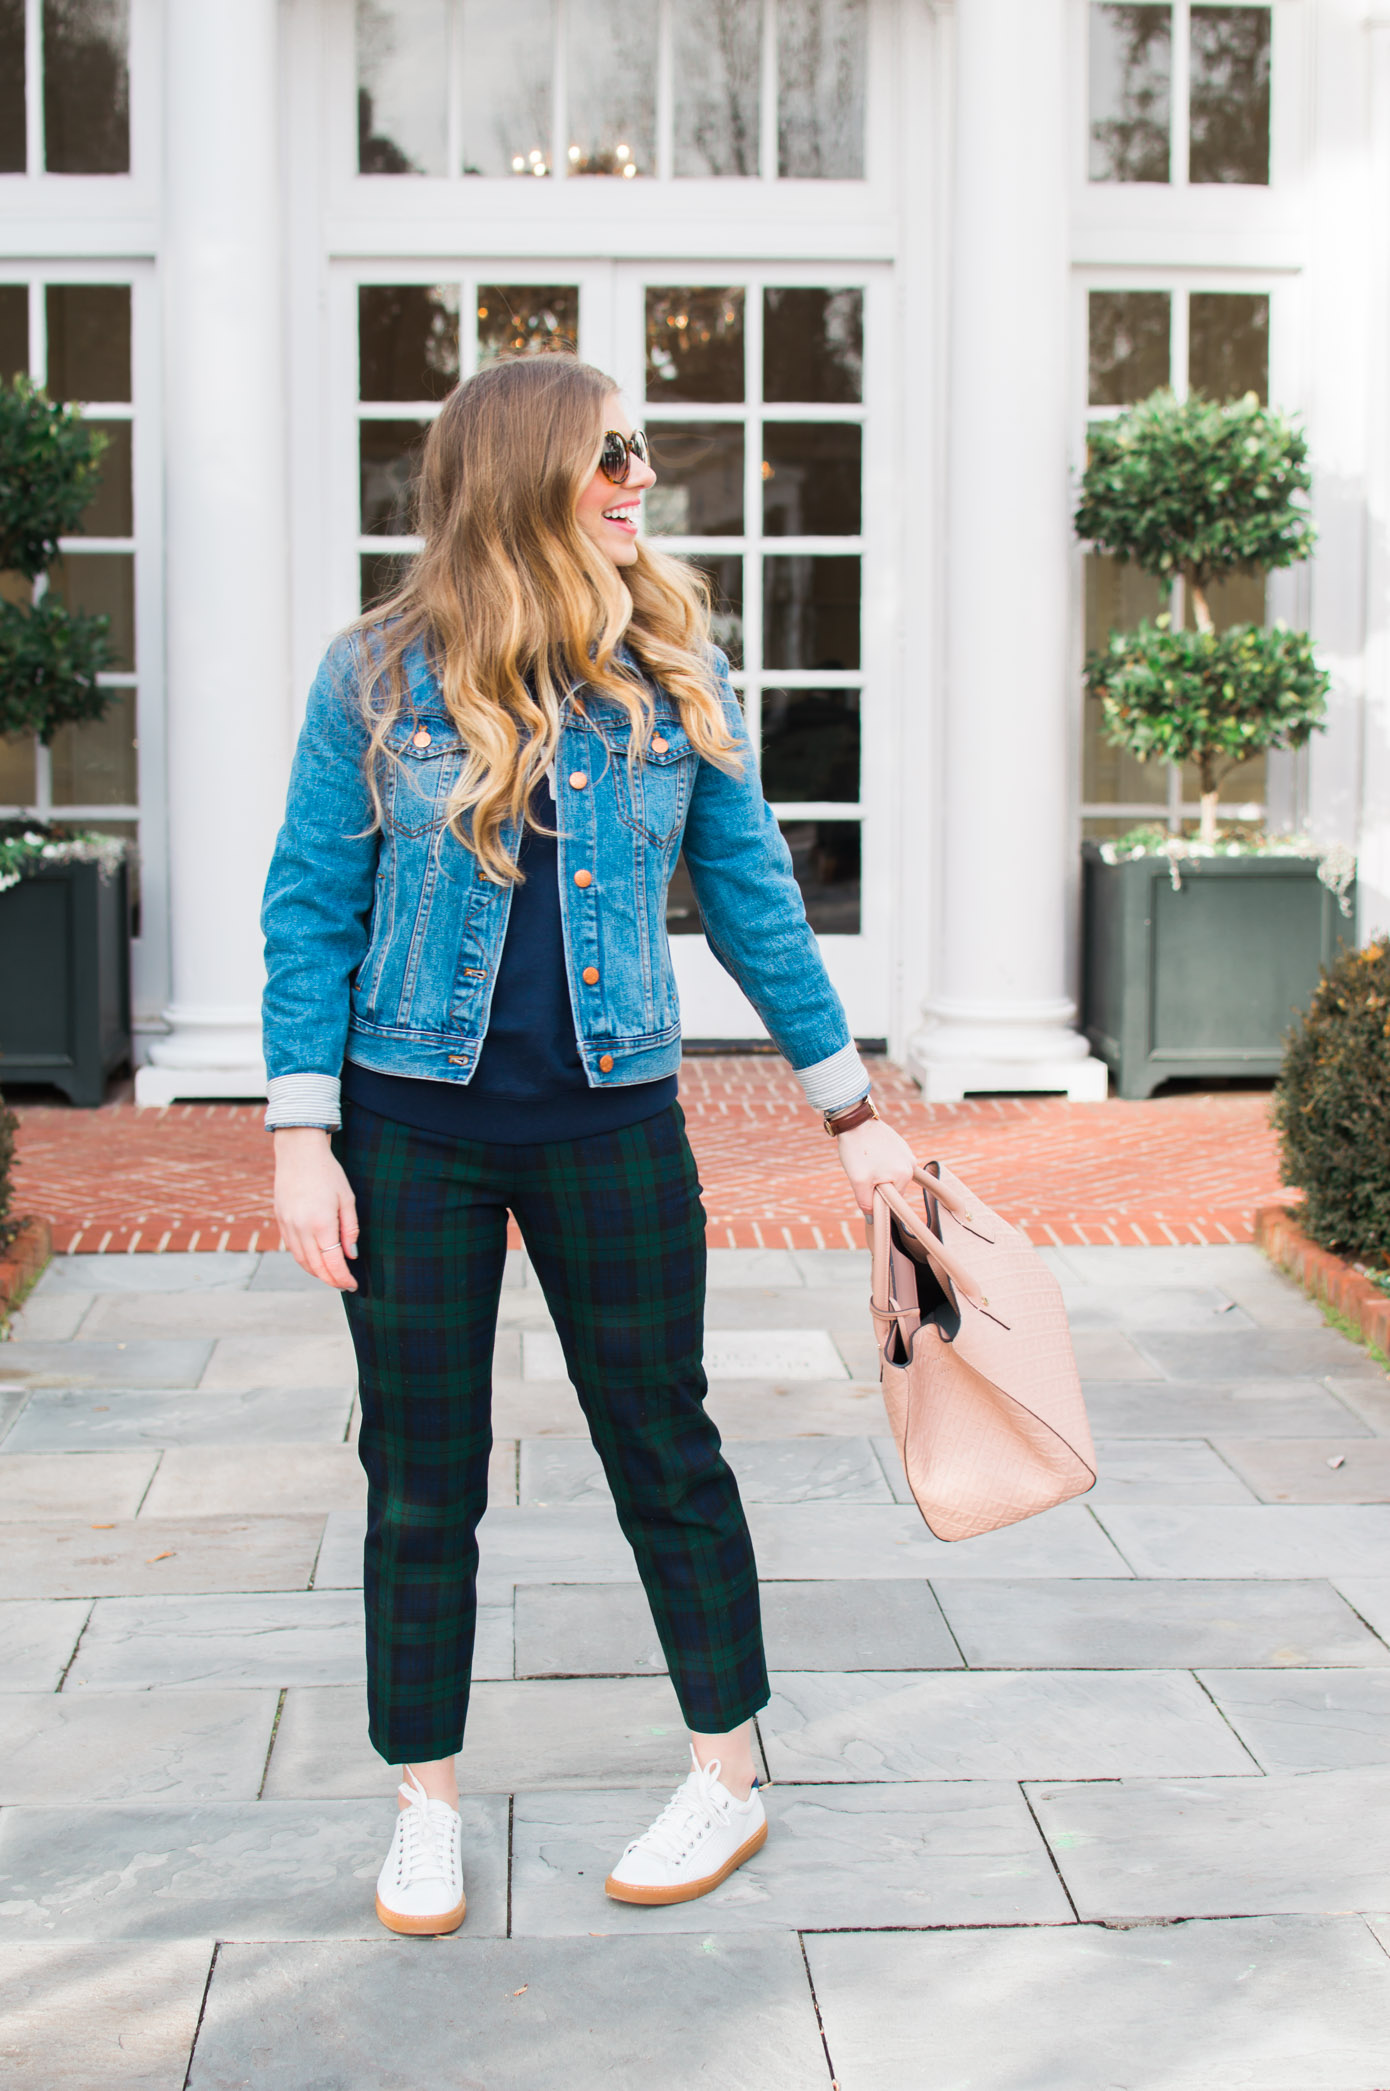 Casual Plaid Pants | Perfect Denim Jacket | Louella Reese Life & Style Blog